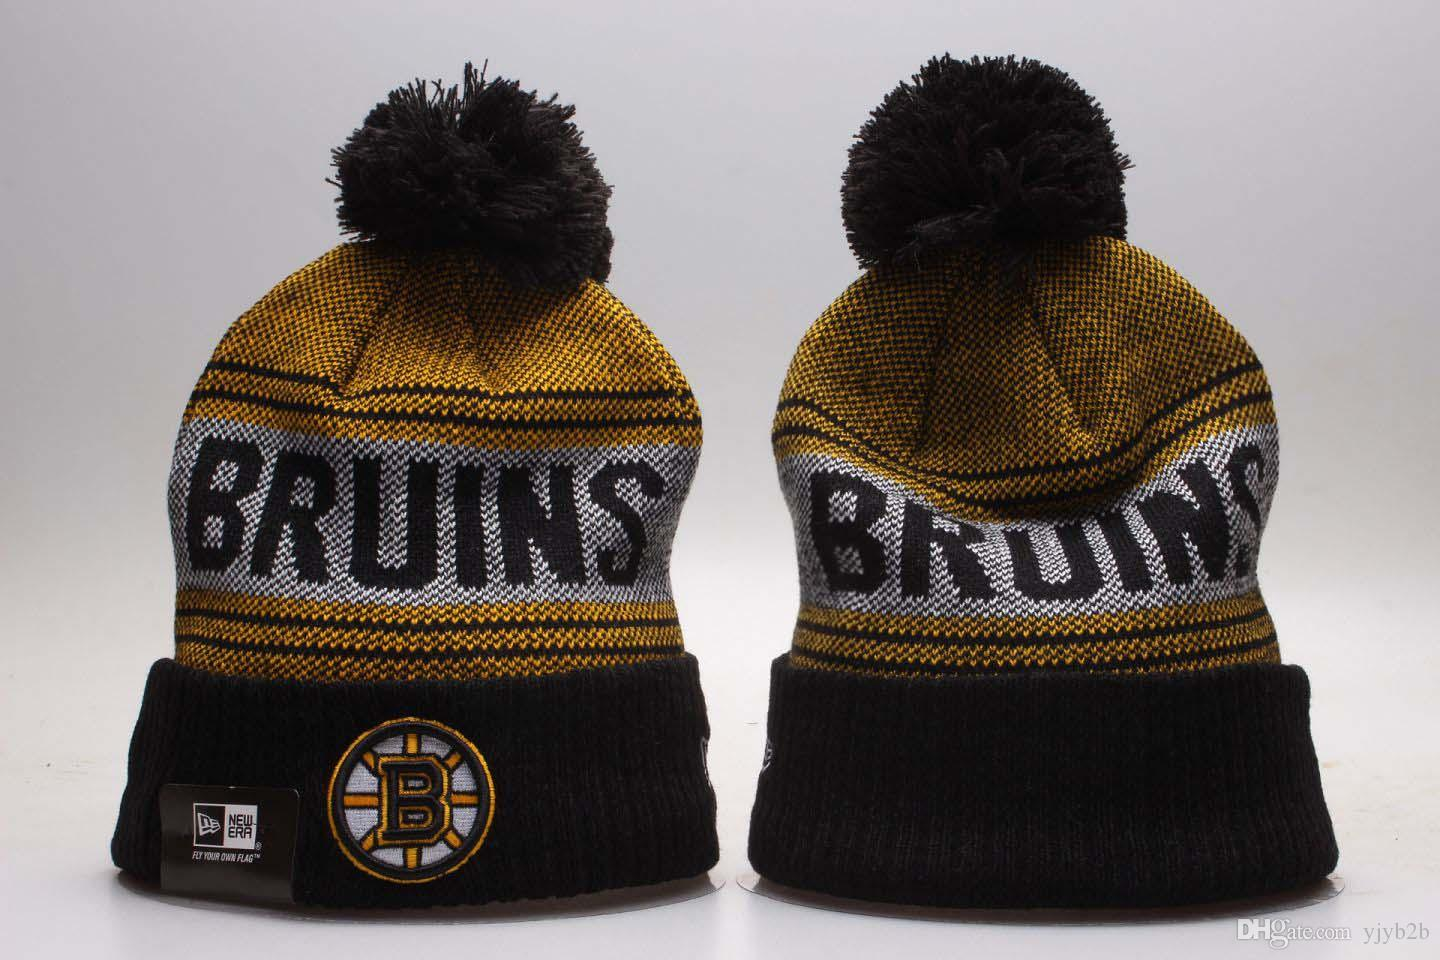 huge discount 3c559 469e4 ... usa new mens boston bruins knitted cuffed pom beanie hats striped  sideline warm giants hockey teams